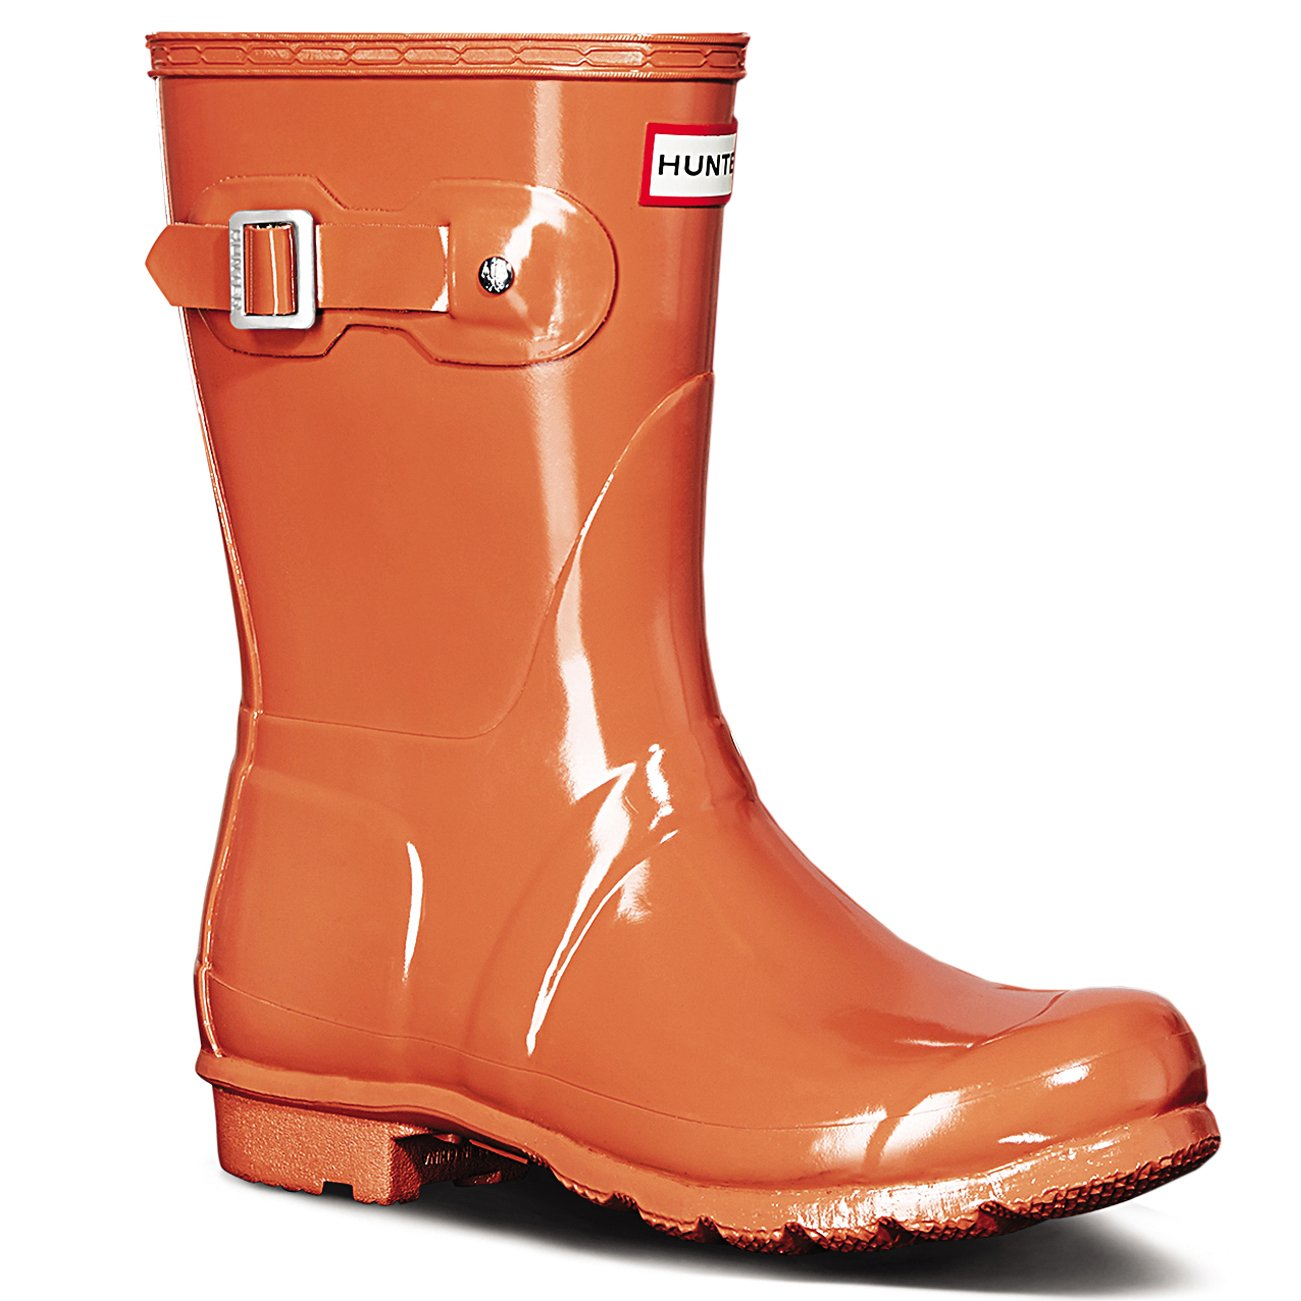 Women's Hunter Boots Original Short Gloss Snow Rain Boots Water Boots Unisex 5-10 B01DKRHTOE 7 M US|Sunset